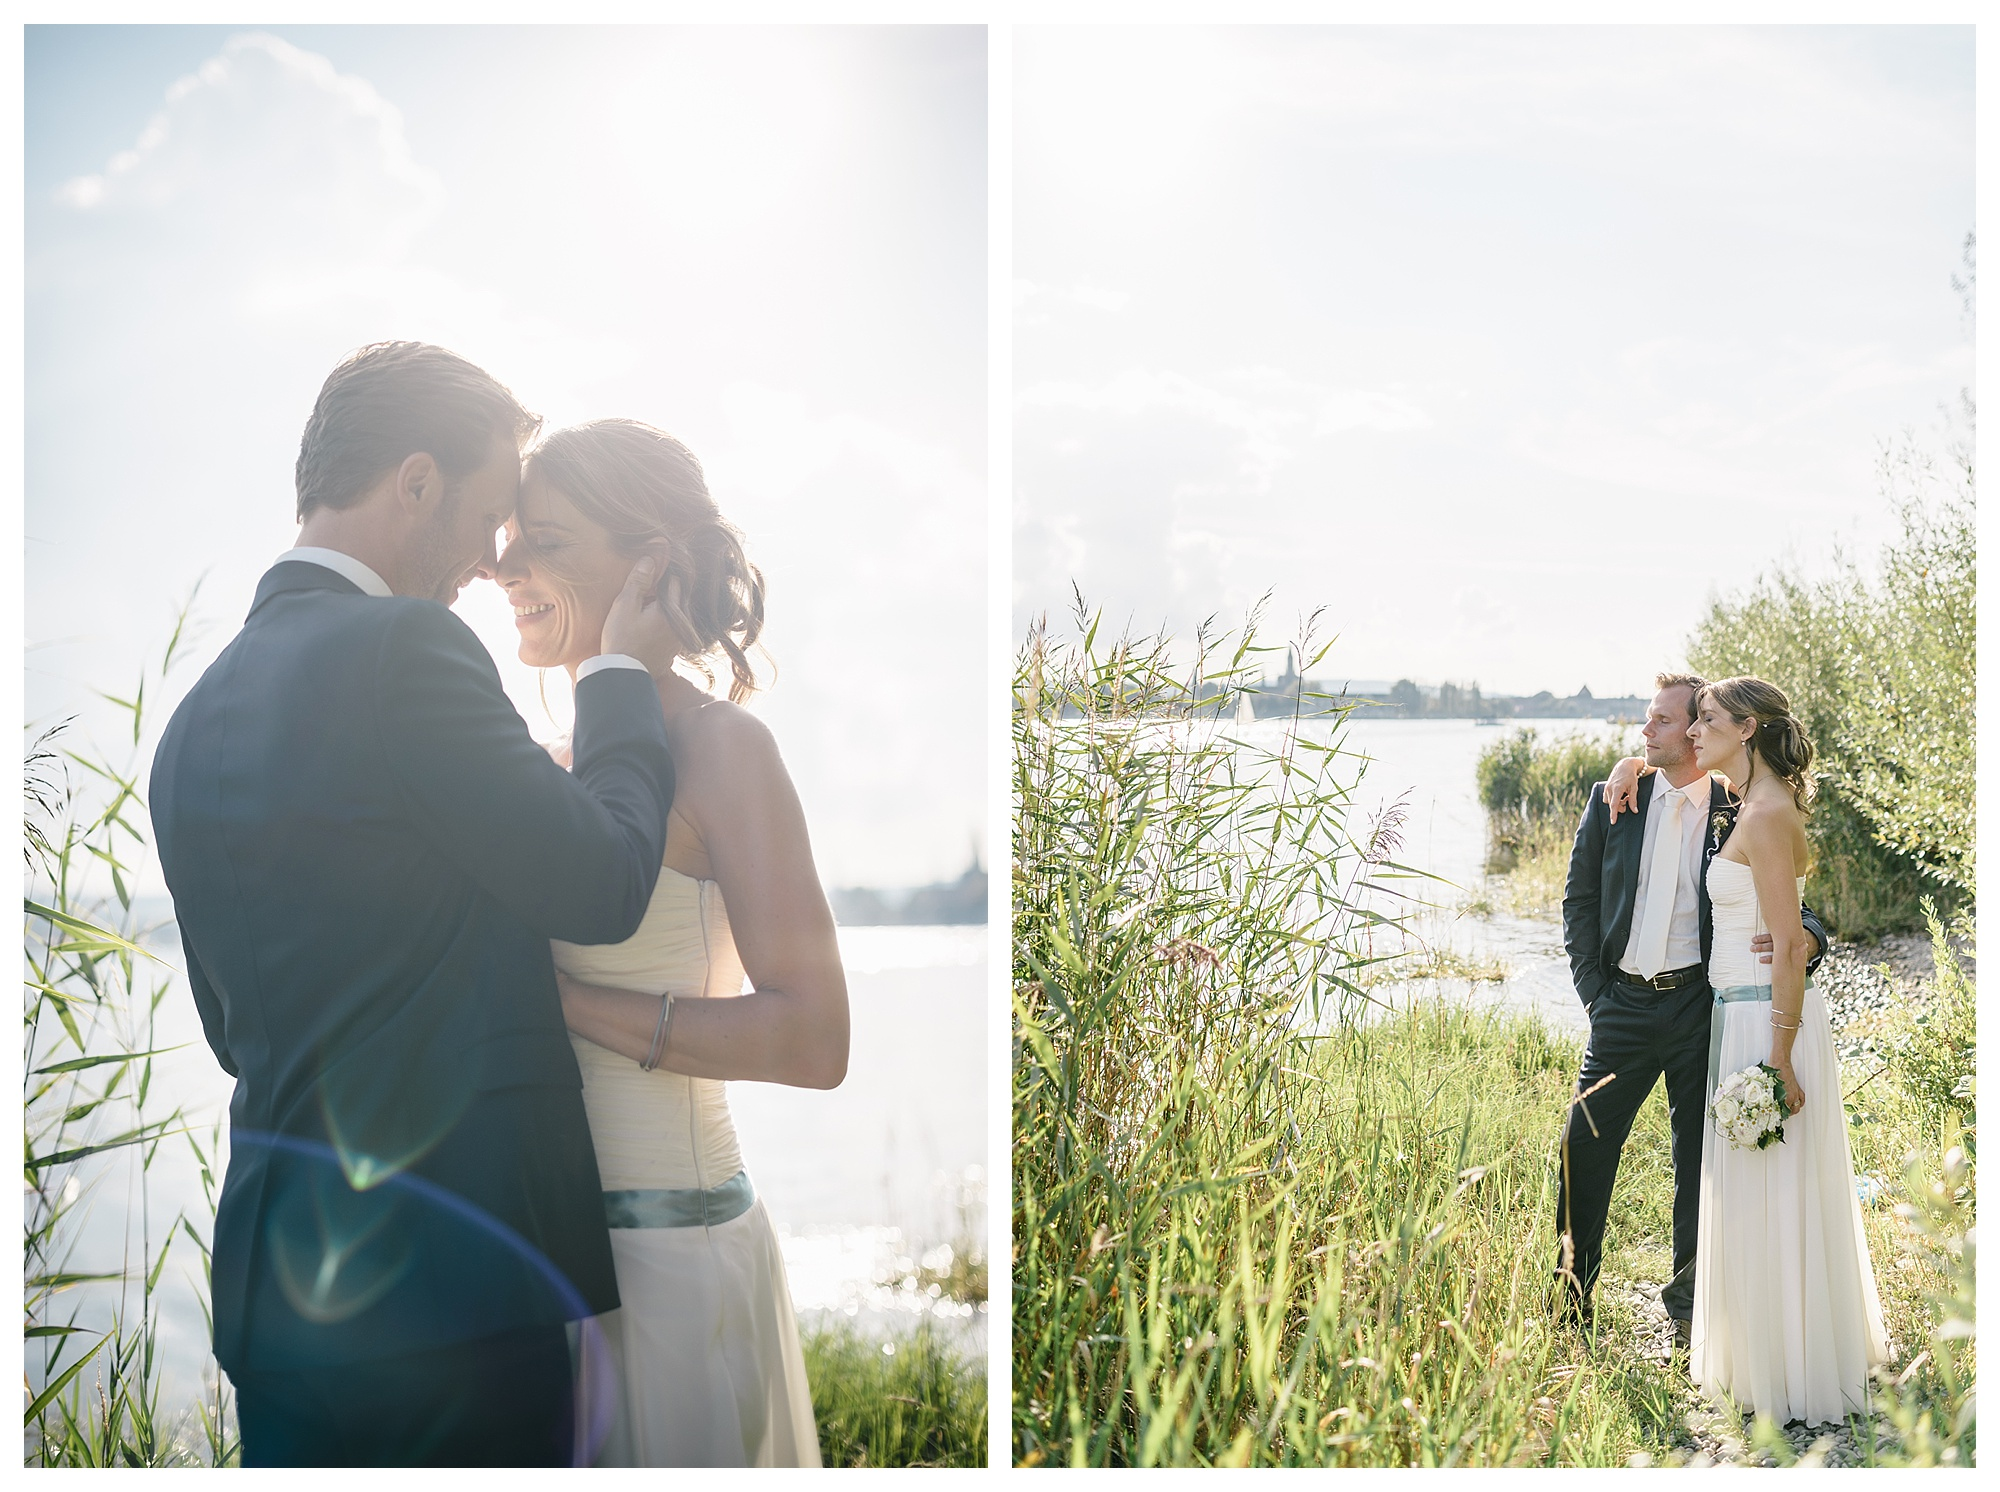 Fotograf Konstanz - Hochzeitsreportage Konstanz Raphael Nicole Elmar Feuerbacher Photography Hochzeit Portrait 41 - Wedding in Constance at Lake of Constance  - 37 -